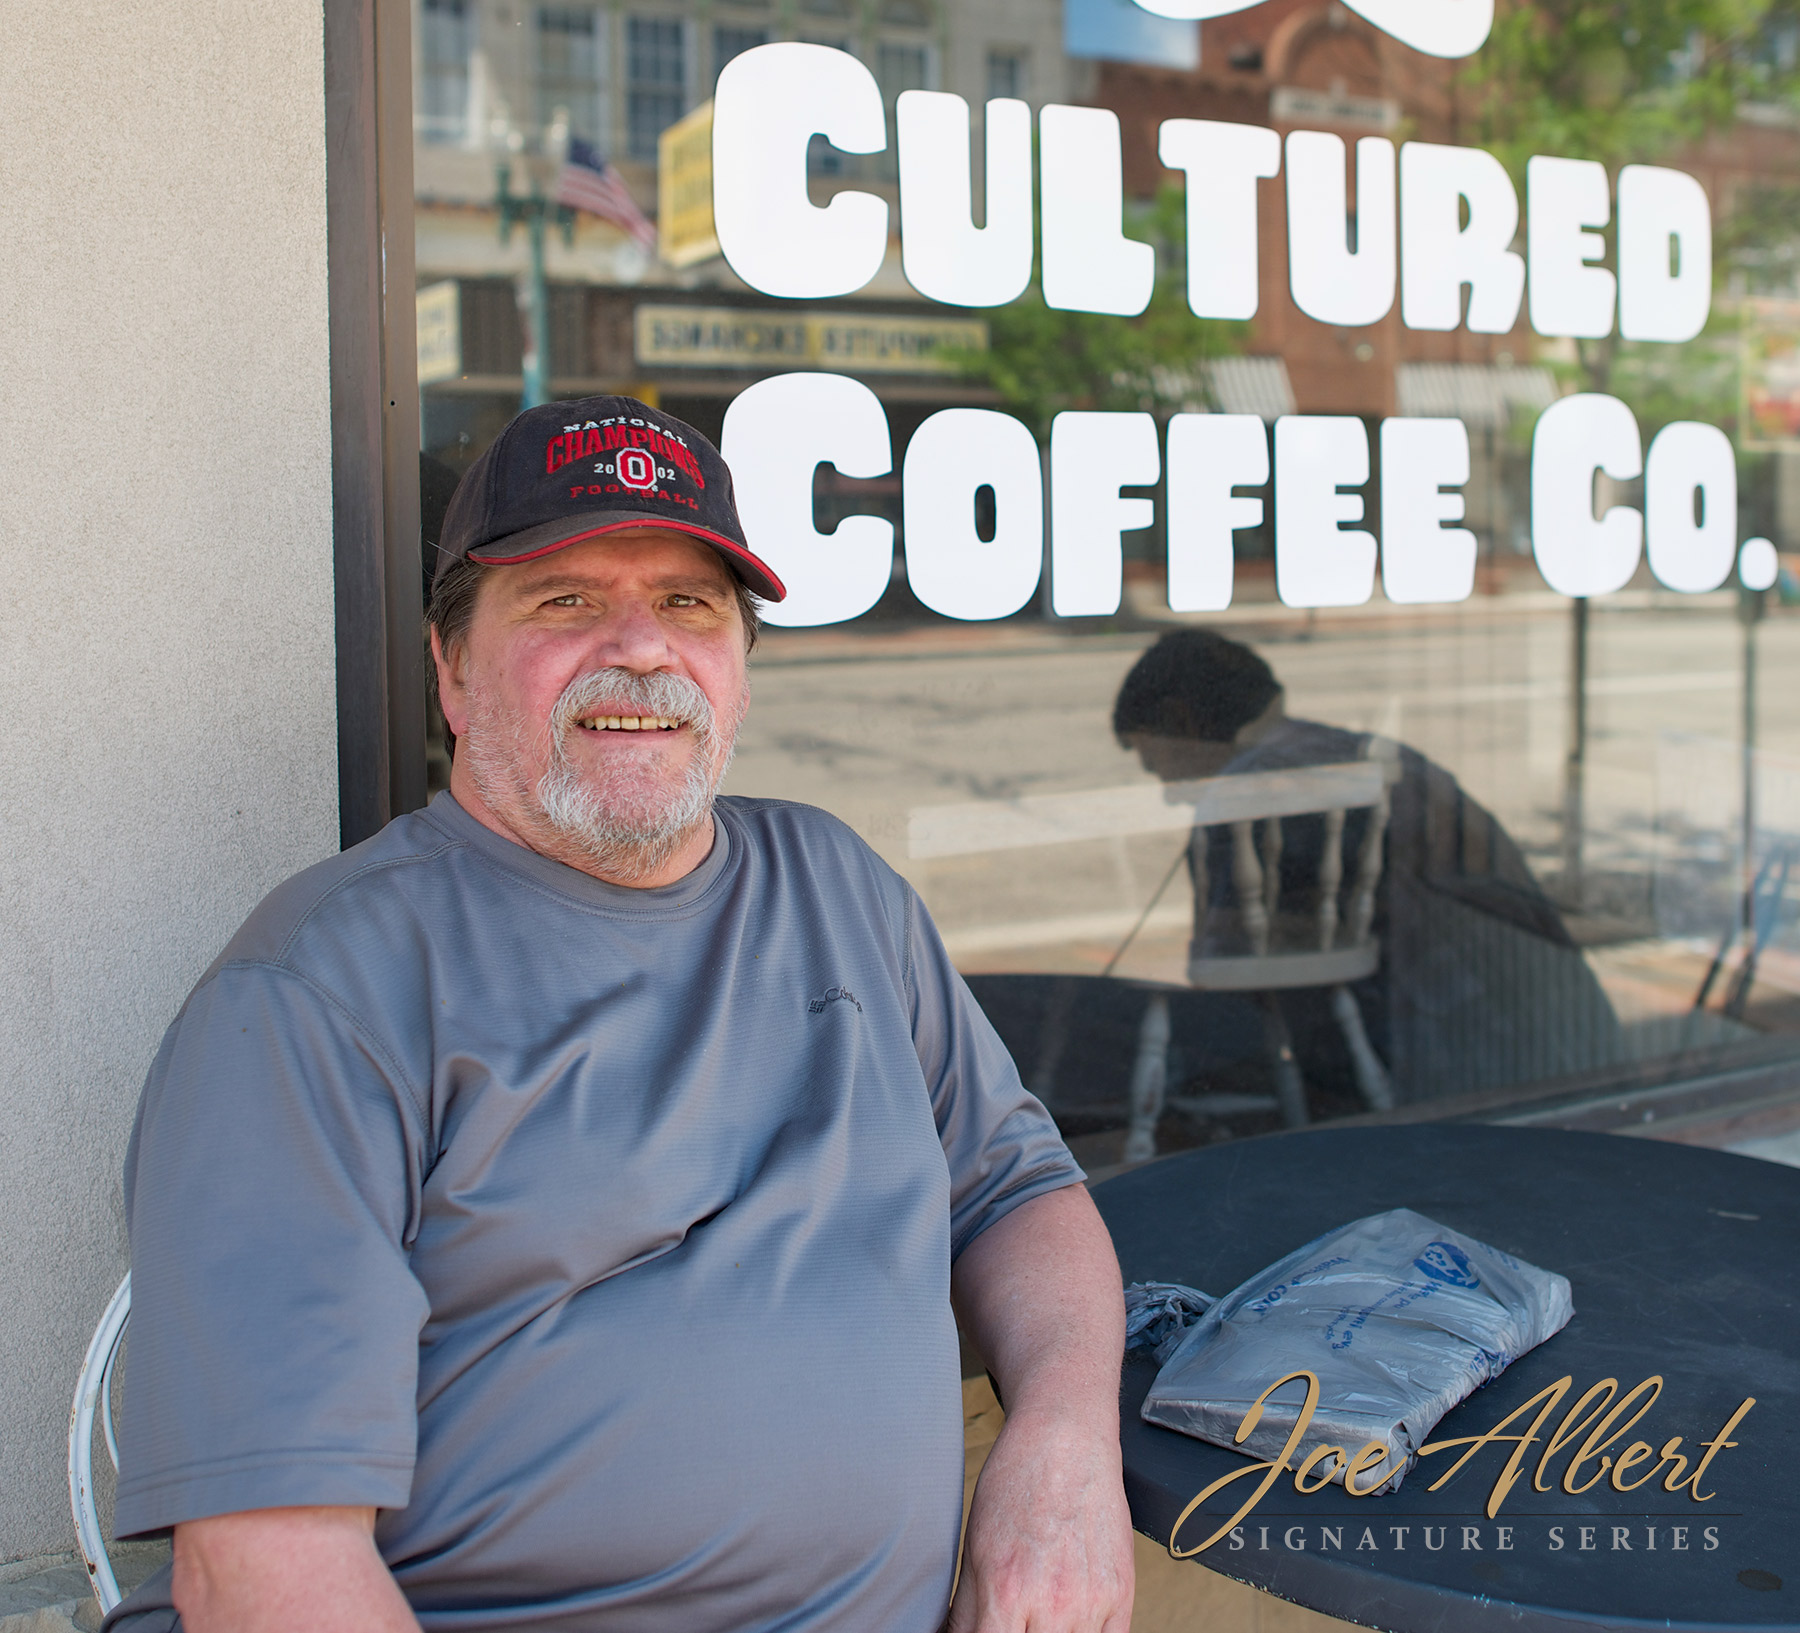 We ran into Bruce who was sitting outside of Cultured Coffee, enjoying the day